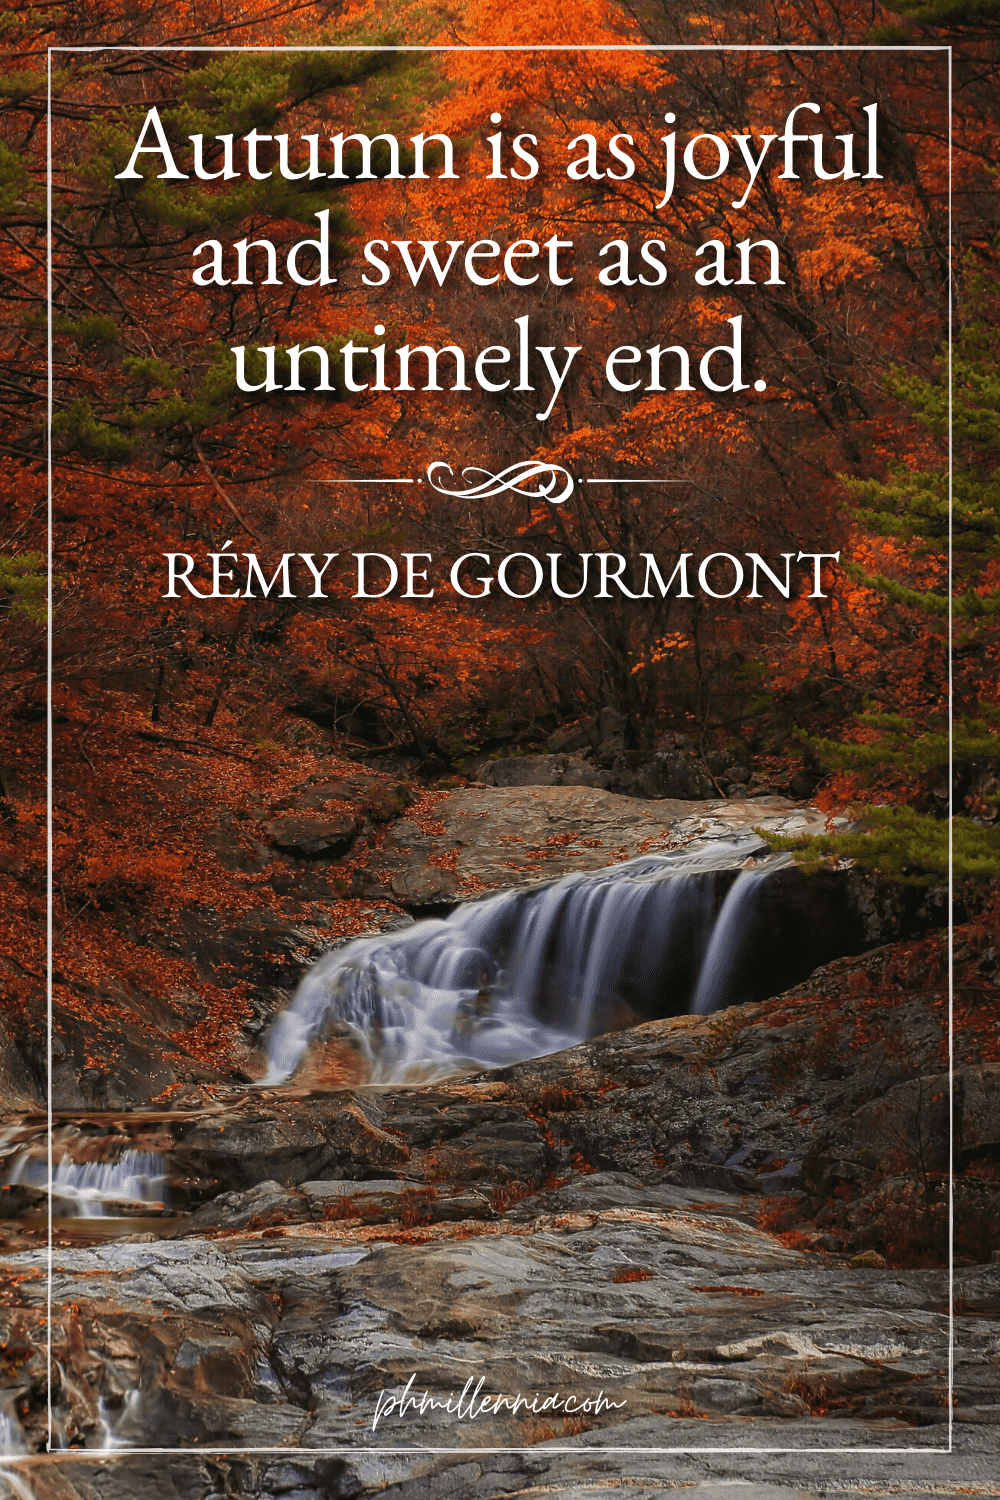 A graphic featuring an autumn quote/fall saying over an image of a waterfall in the middle of a forest/woodland with trees in autumn/fall